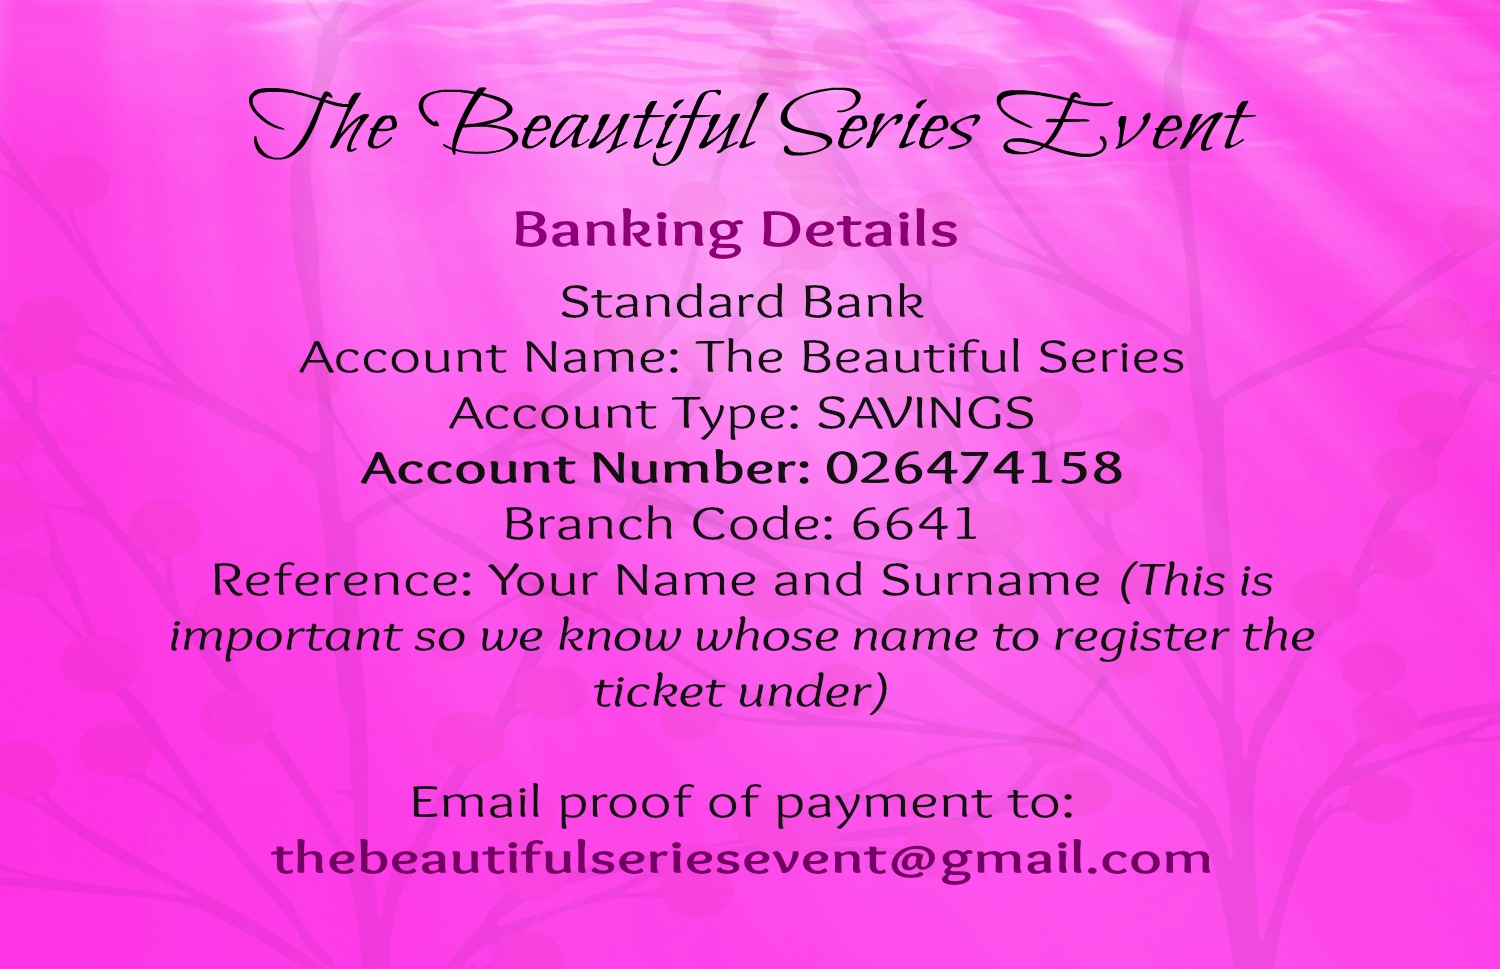 The Beautiful Series Event Banking Details